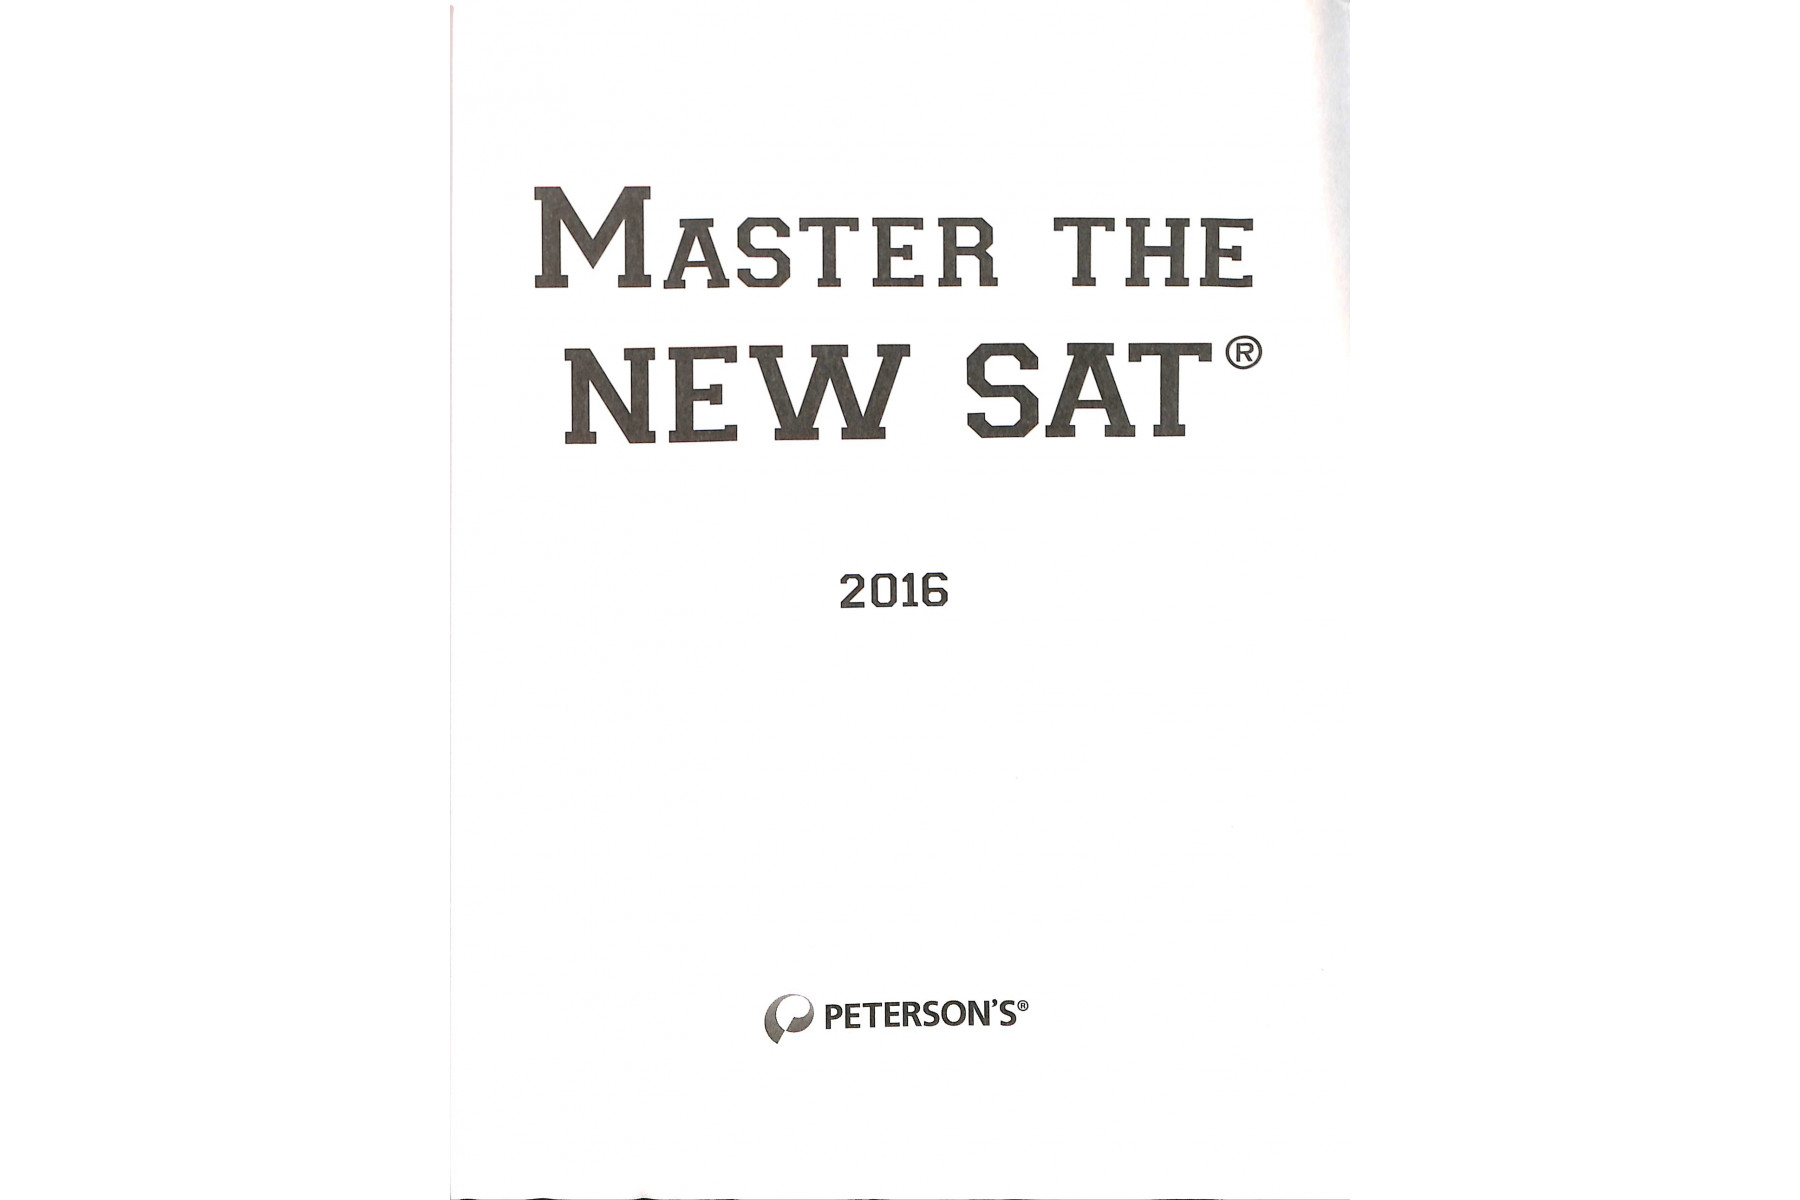 Master the New SAT 2016 (Peterson's Sat Prep Guide)